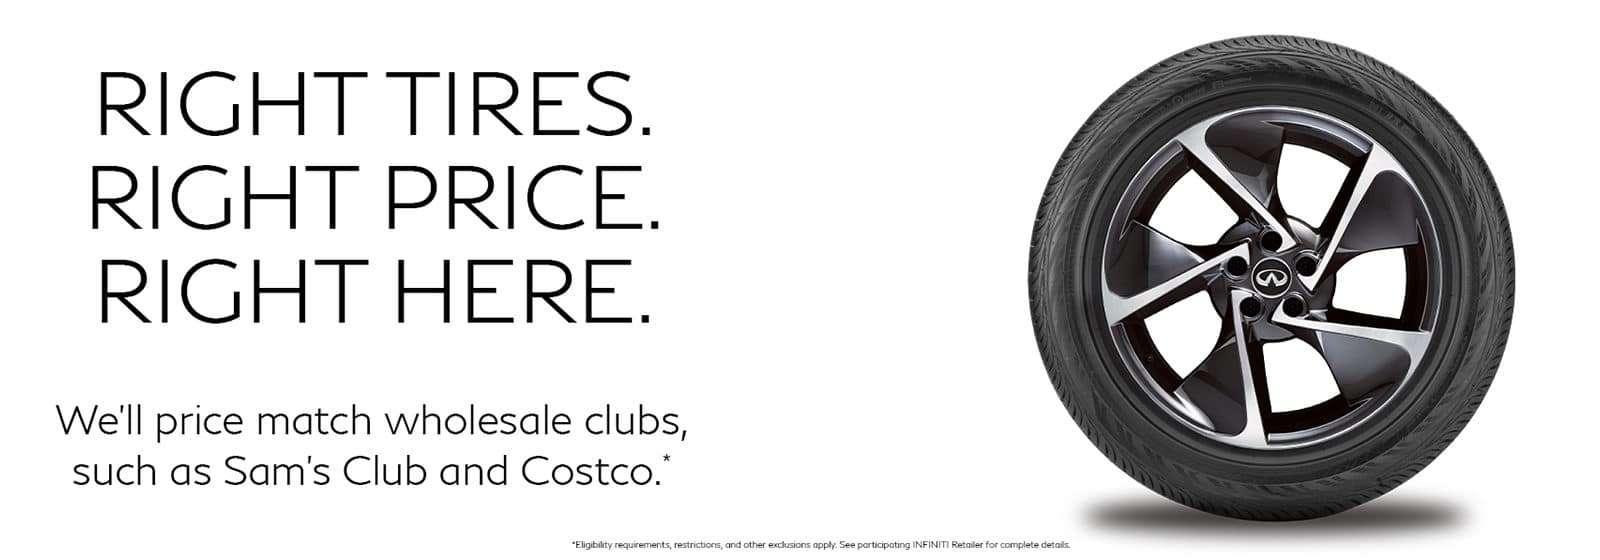 Slide with an INFINITI tire on it. Text says Right Tires, Right price, right here. We'll price match wholesale clubs, such as Sam's club and costo. Disclaimer, eligibility requirements, restrictions and other exclusions apply. See participating INFINITI retailer for complete details. Click slide to be directed to retailer tire store.